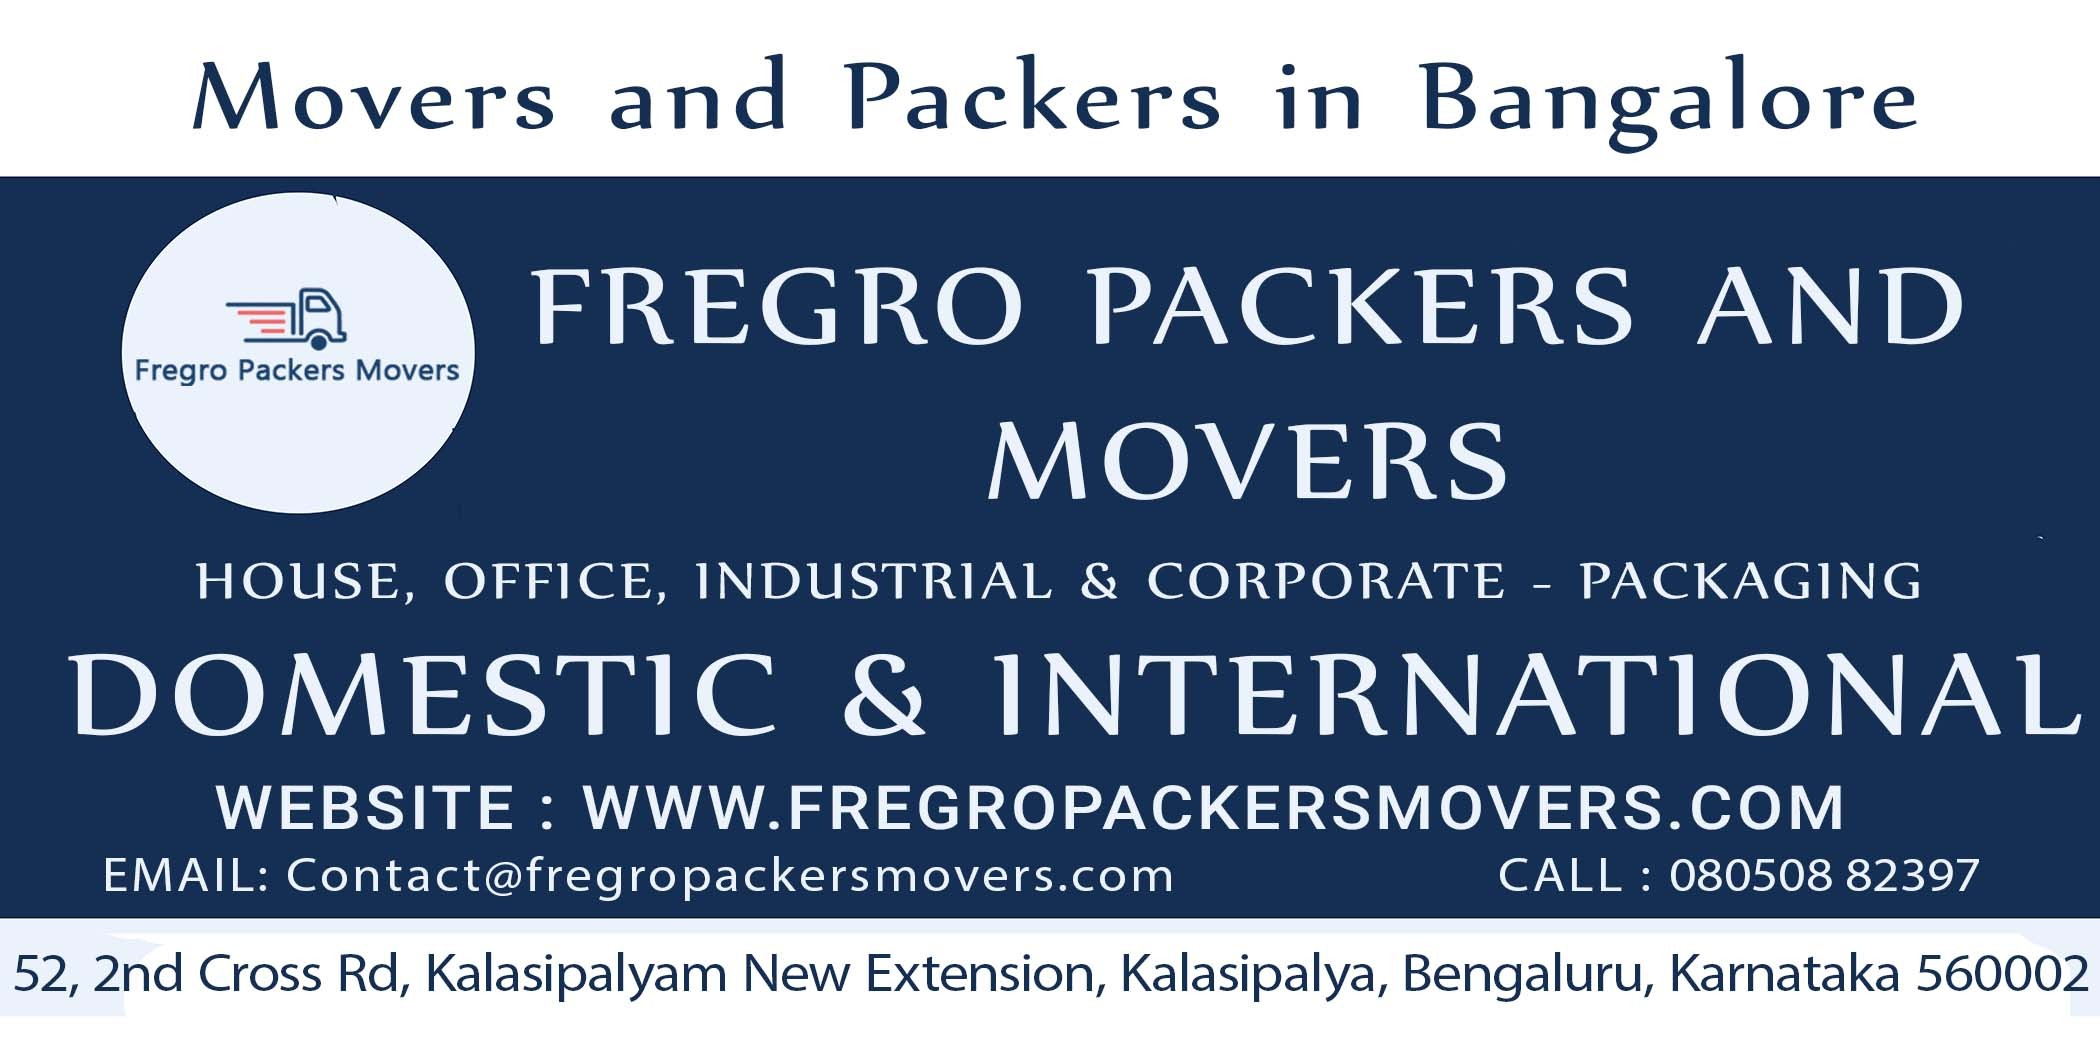 Fregro Pakcers and Movers